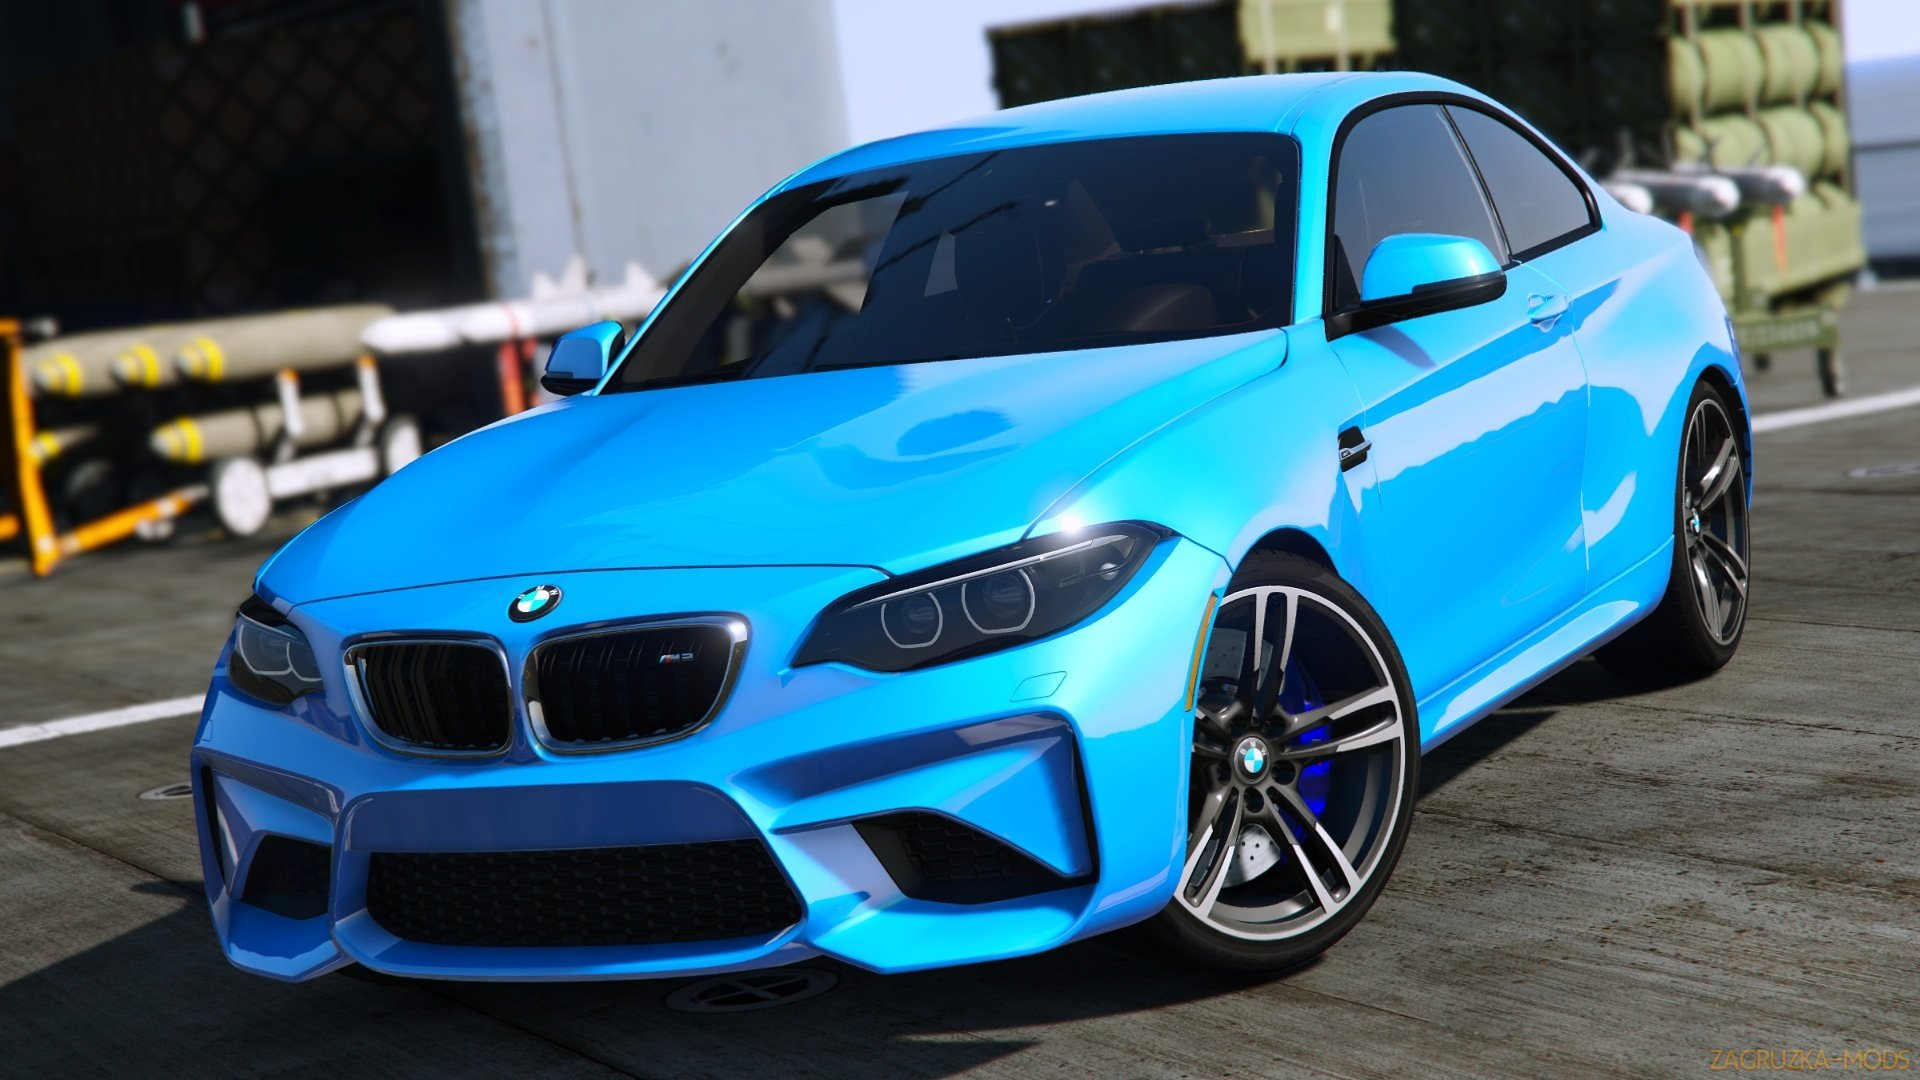 BMW M2 2016 + Tuning v3.0 for GTA 5